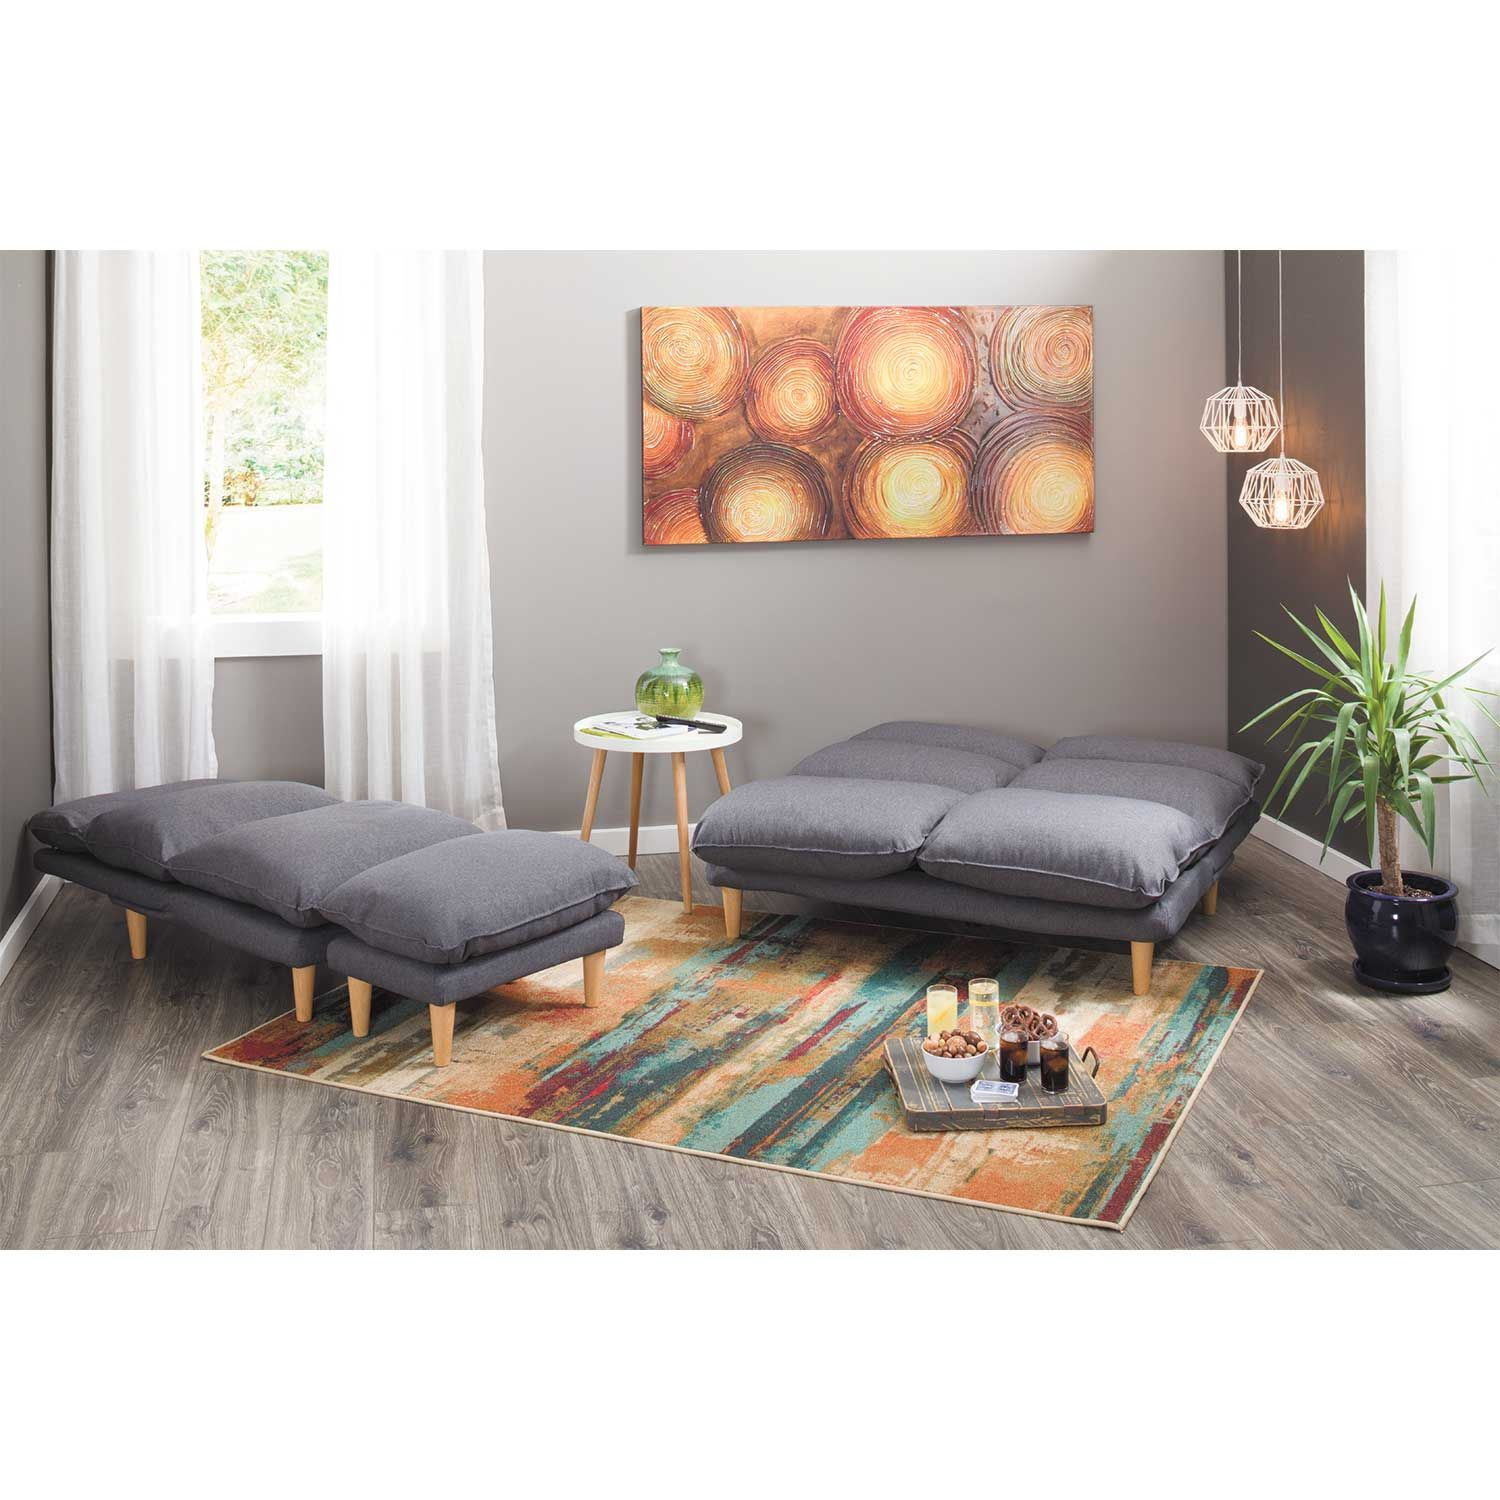 Picture of Lounge Gray Ottoman